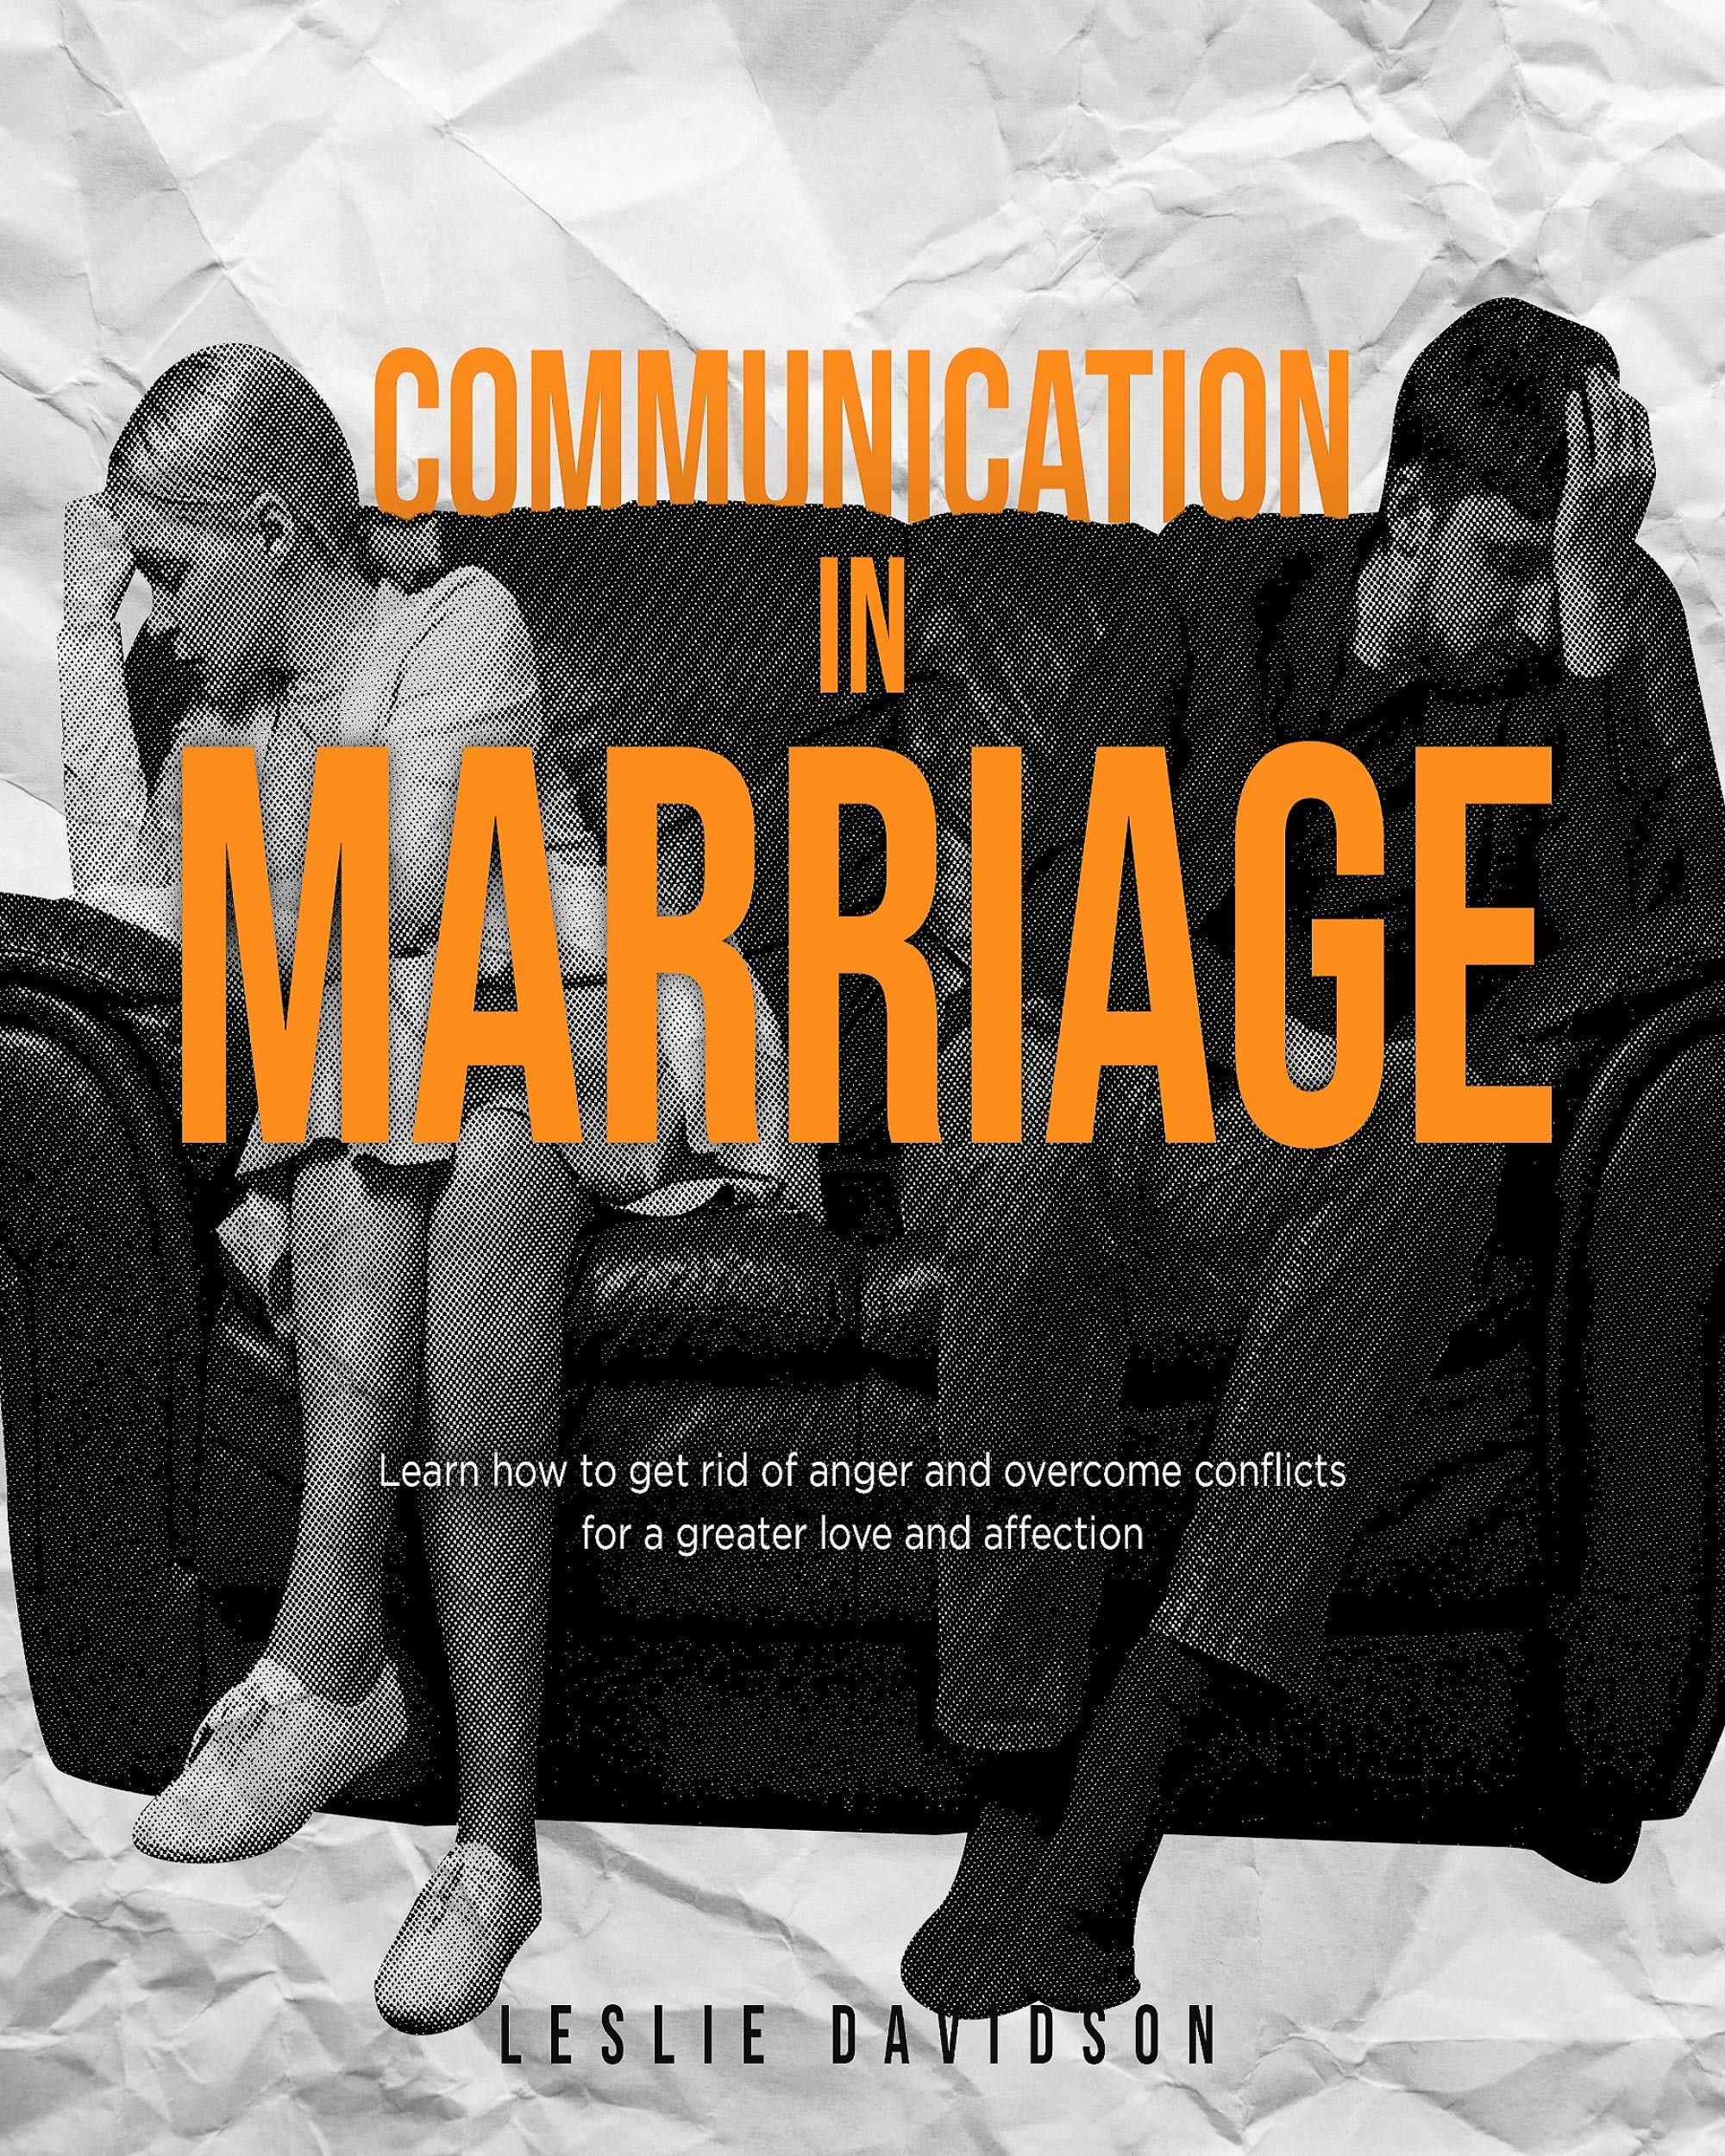 Communication in Marriage: Learn how to get rid of anger and overcome conflicts for a greater love and affection (Self Help Books for Men and Woman, Couple ... and Counselin, Toxic Relationships Book 3)